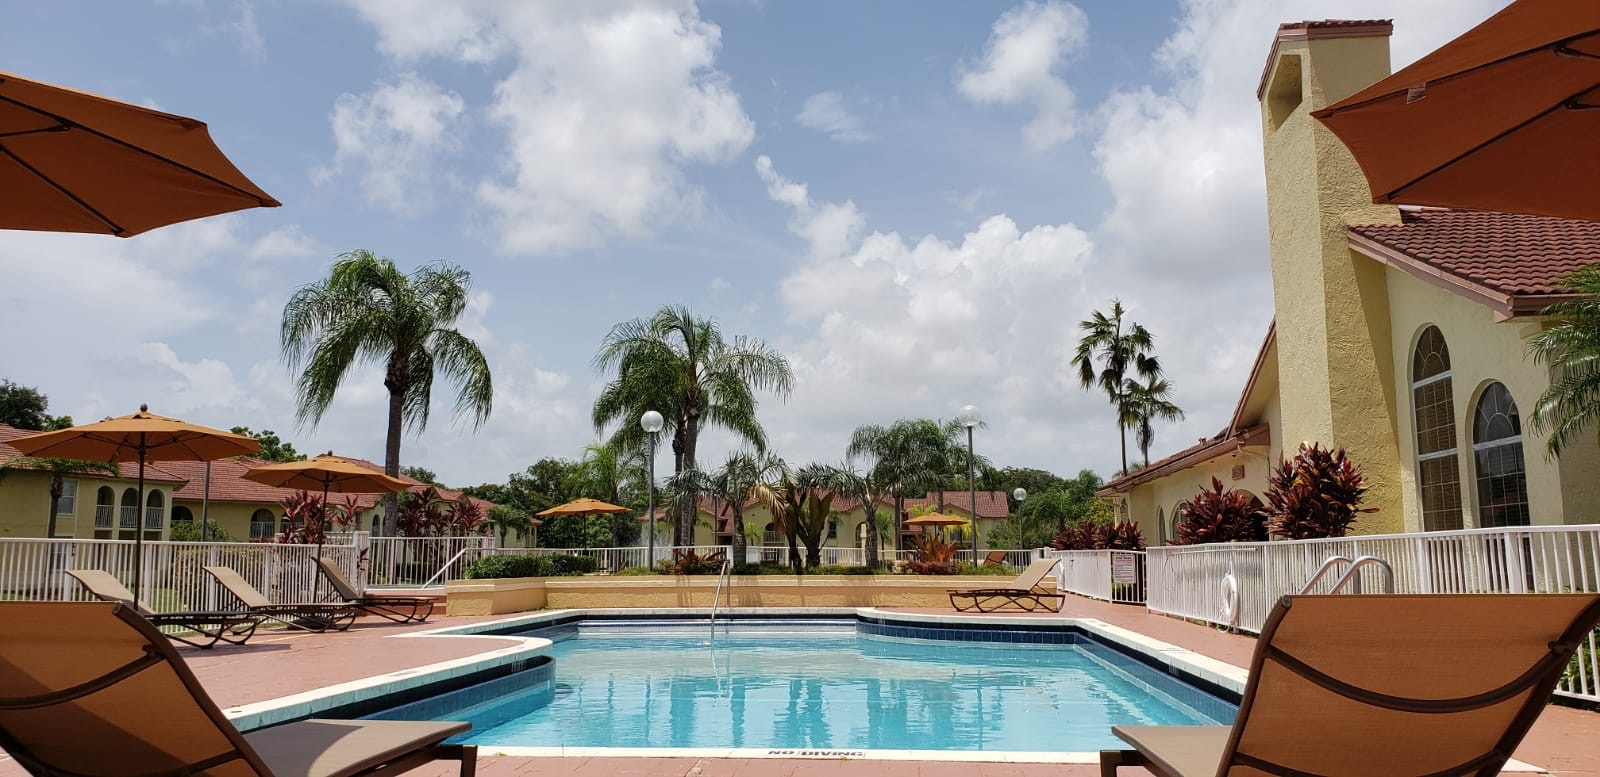 Resort Style Pool at Pepper Cove Apartments in Miami, FL